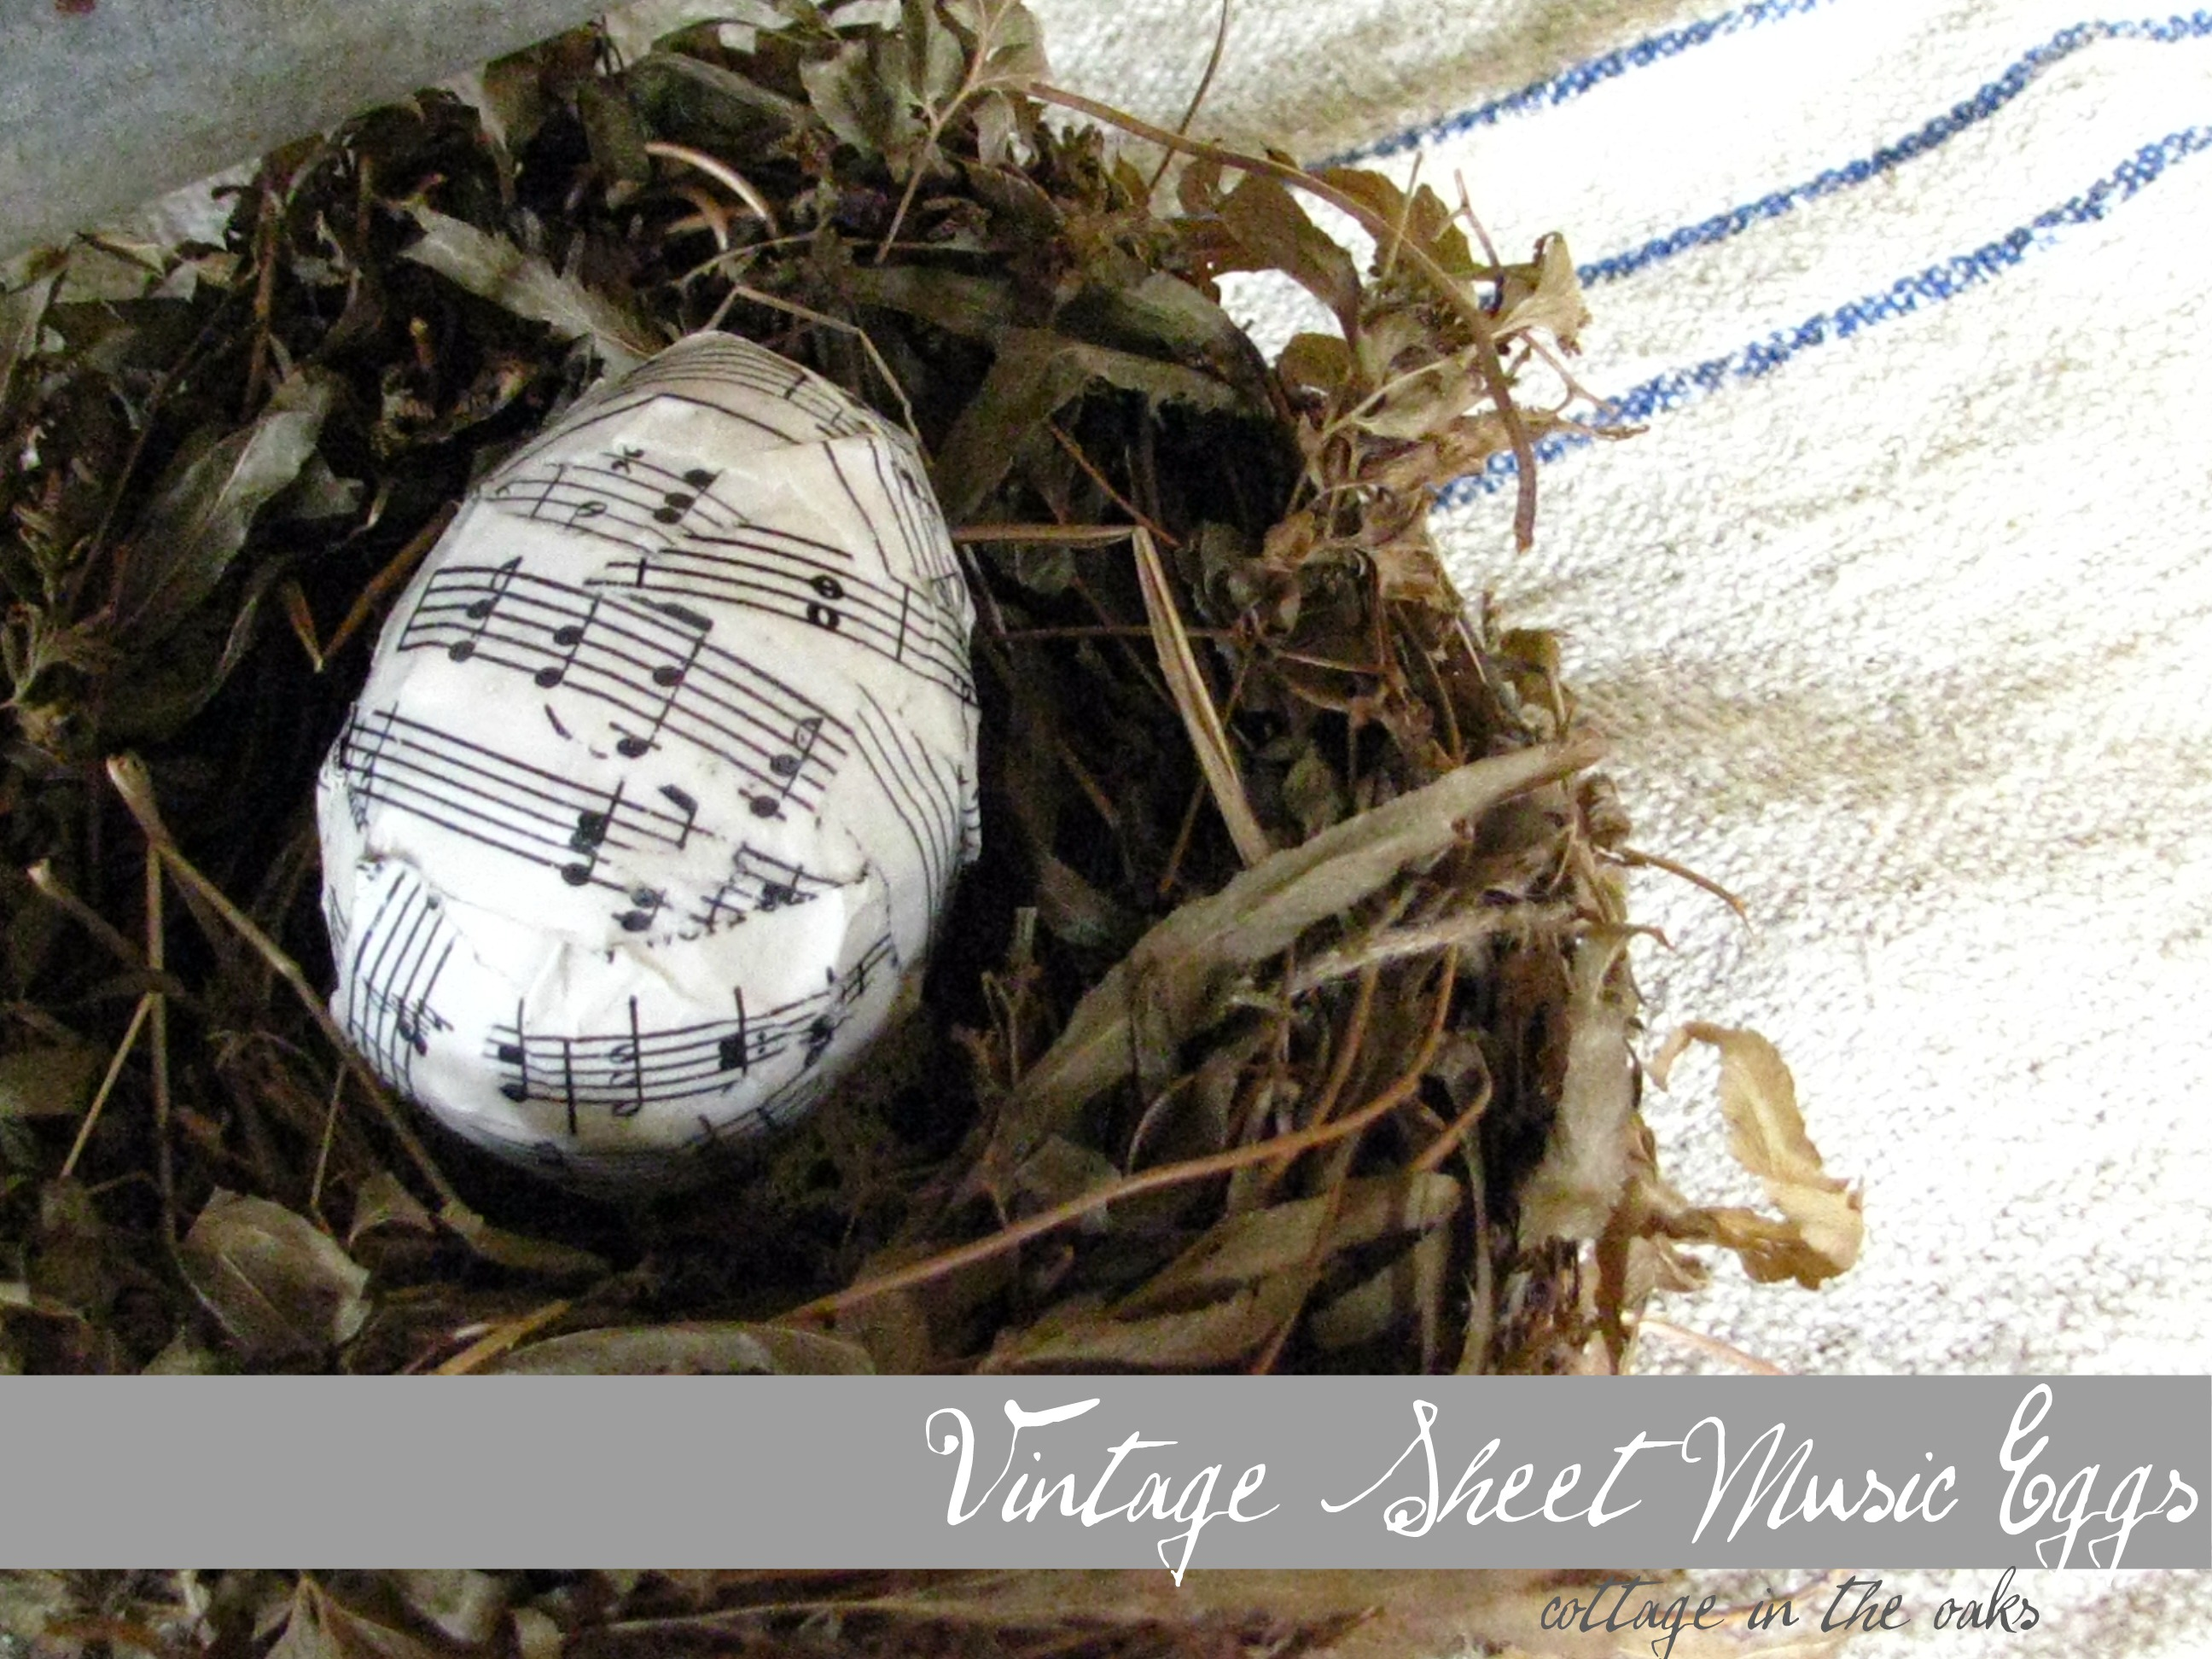 Vintage Sheet Music Eggs main